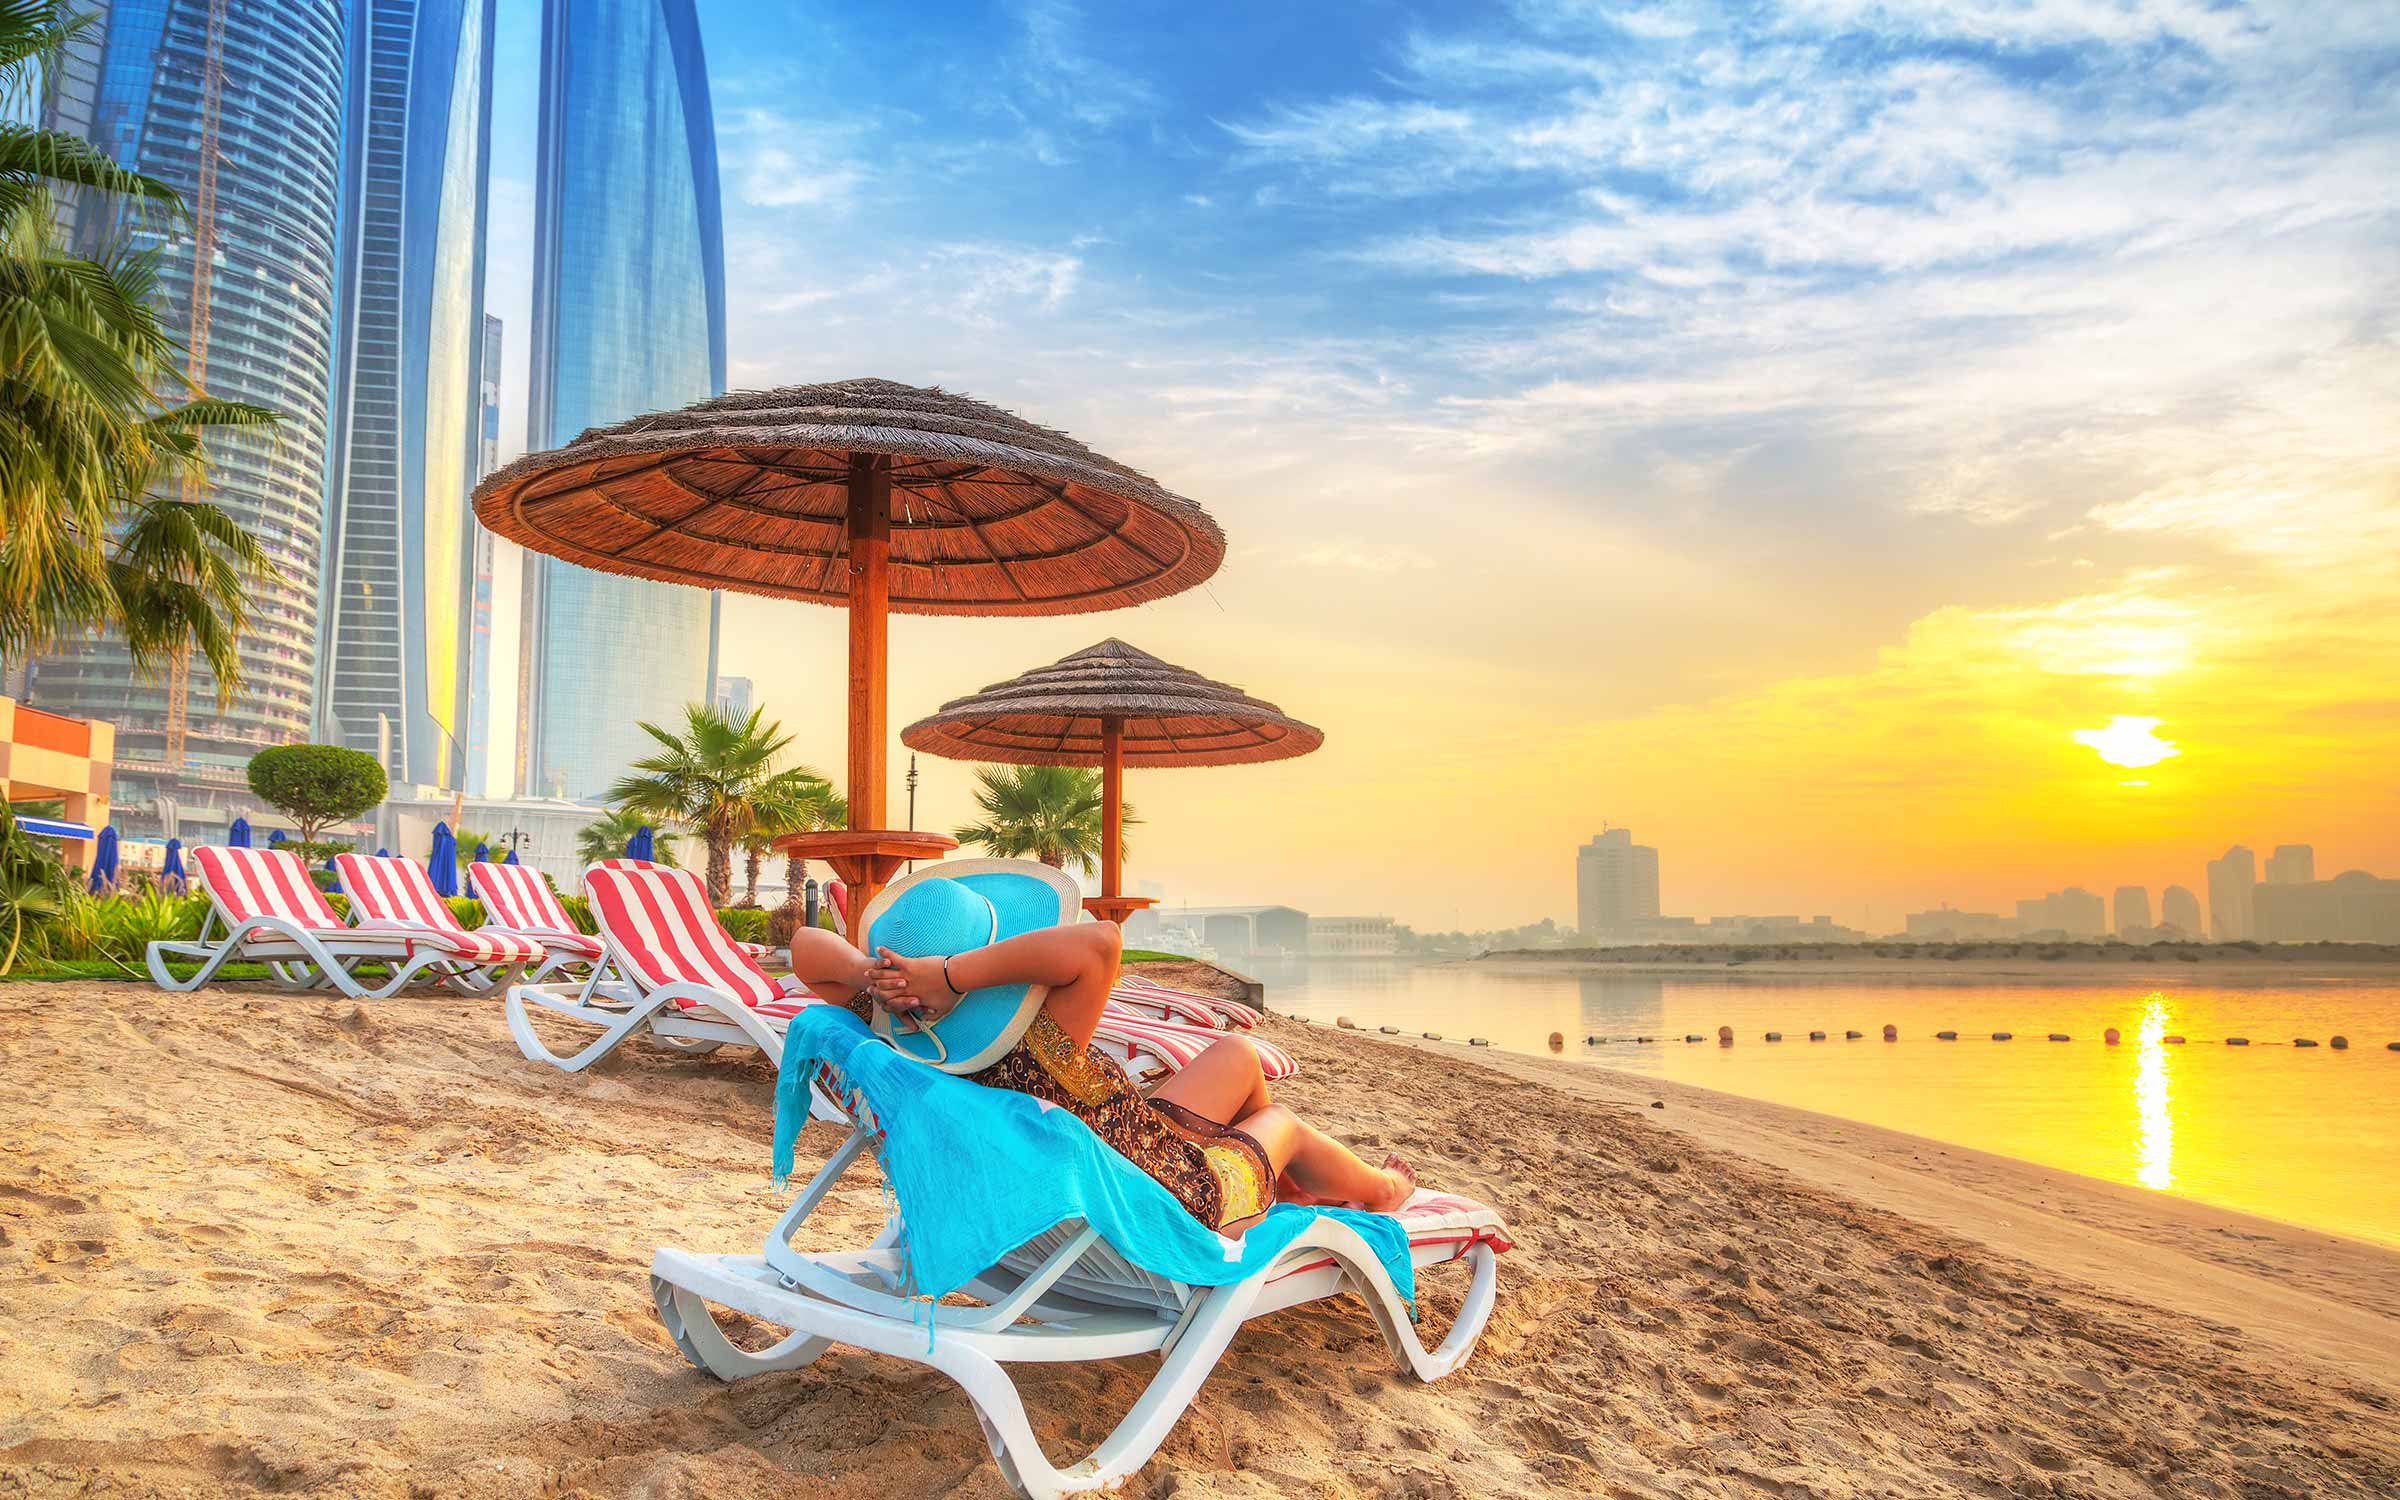 woman on beach lounger in UAE